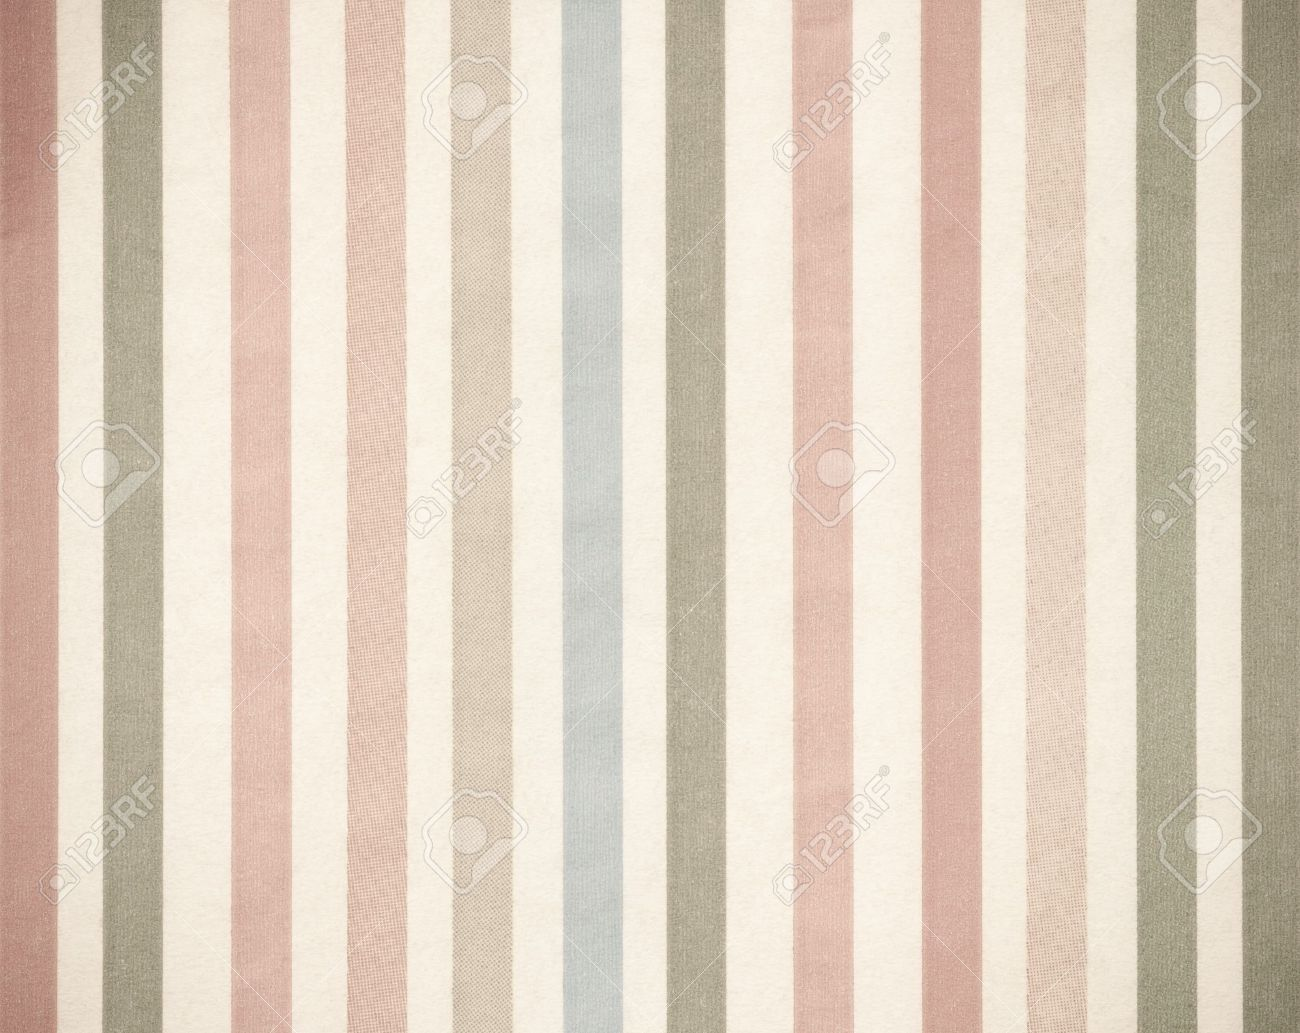 soft-color background with colored vertical stripes (shades of pink, grey and blue) Stock Photo - 9697593